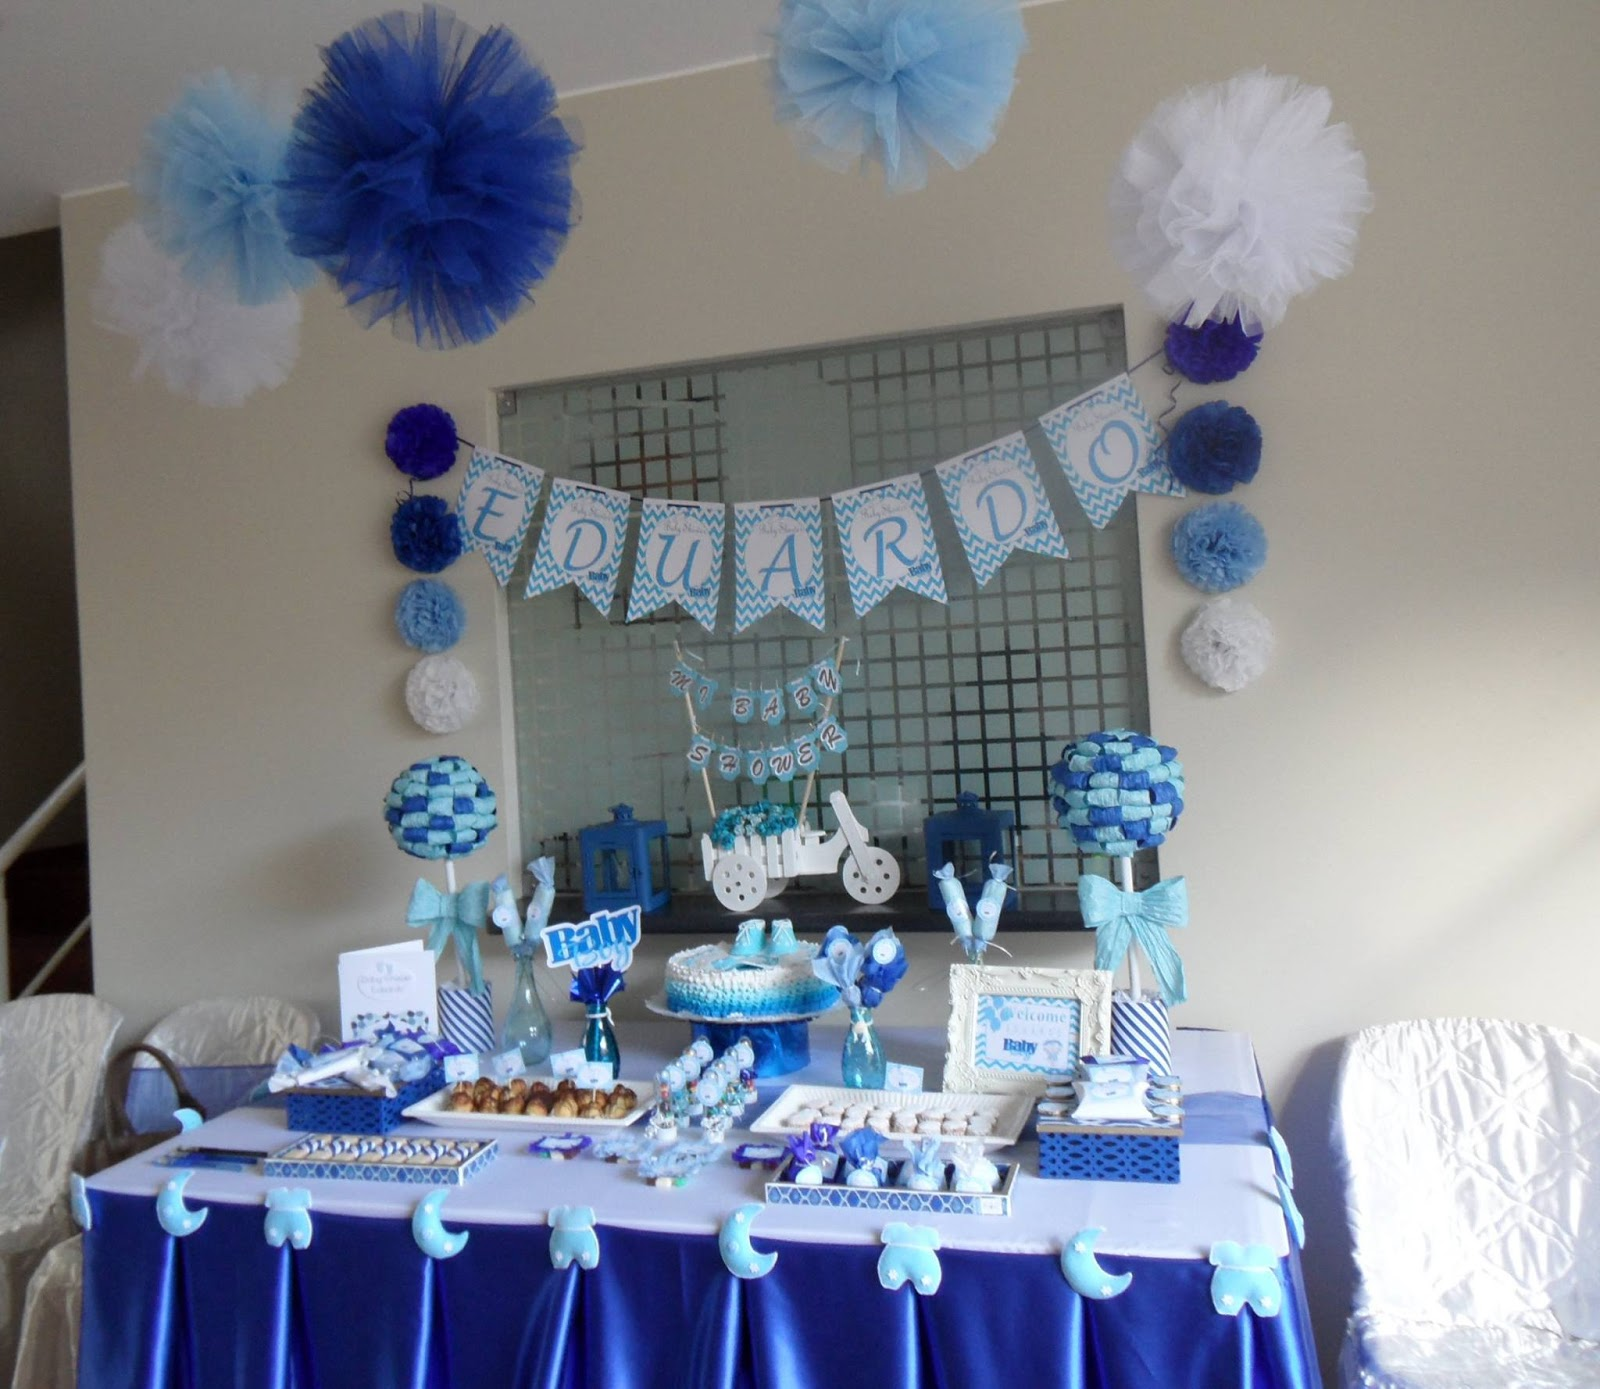 Ideas De Decoracion Baby Shower Nina.Decoracion Baby Shower Nino Eduardo Baby Shower